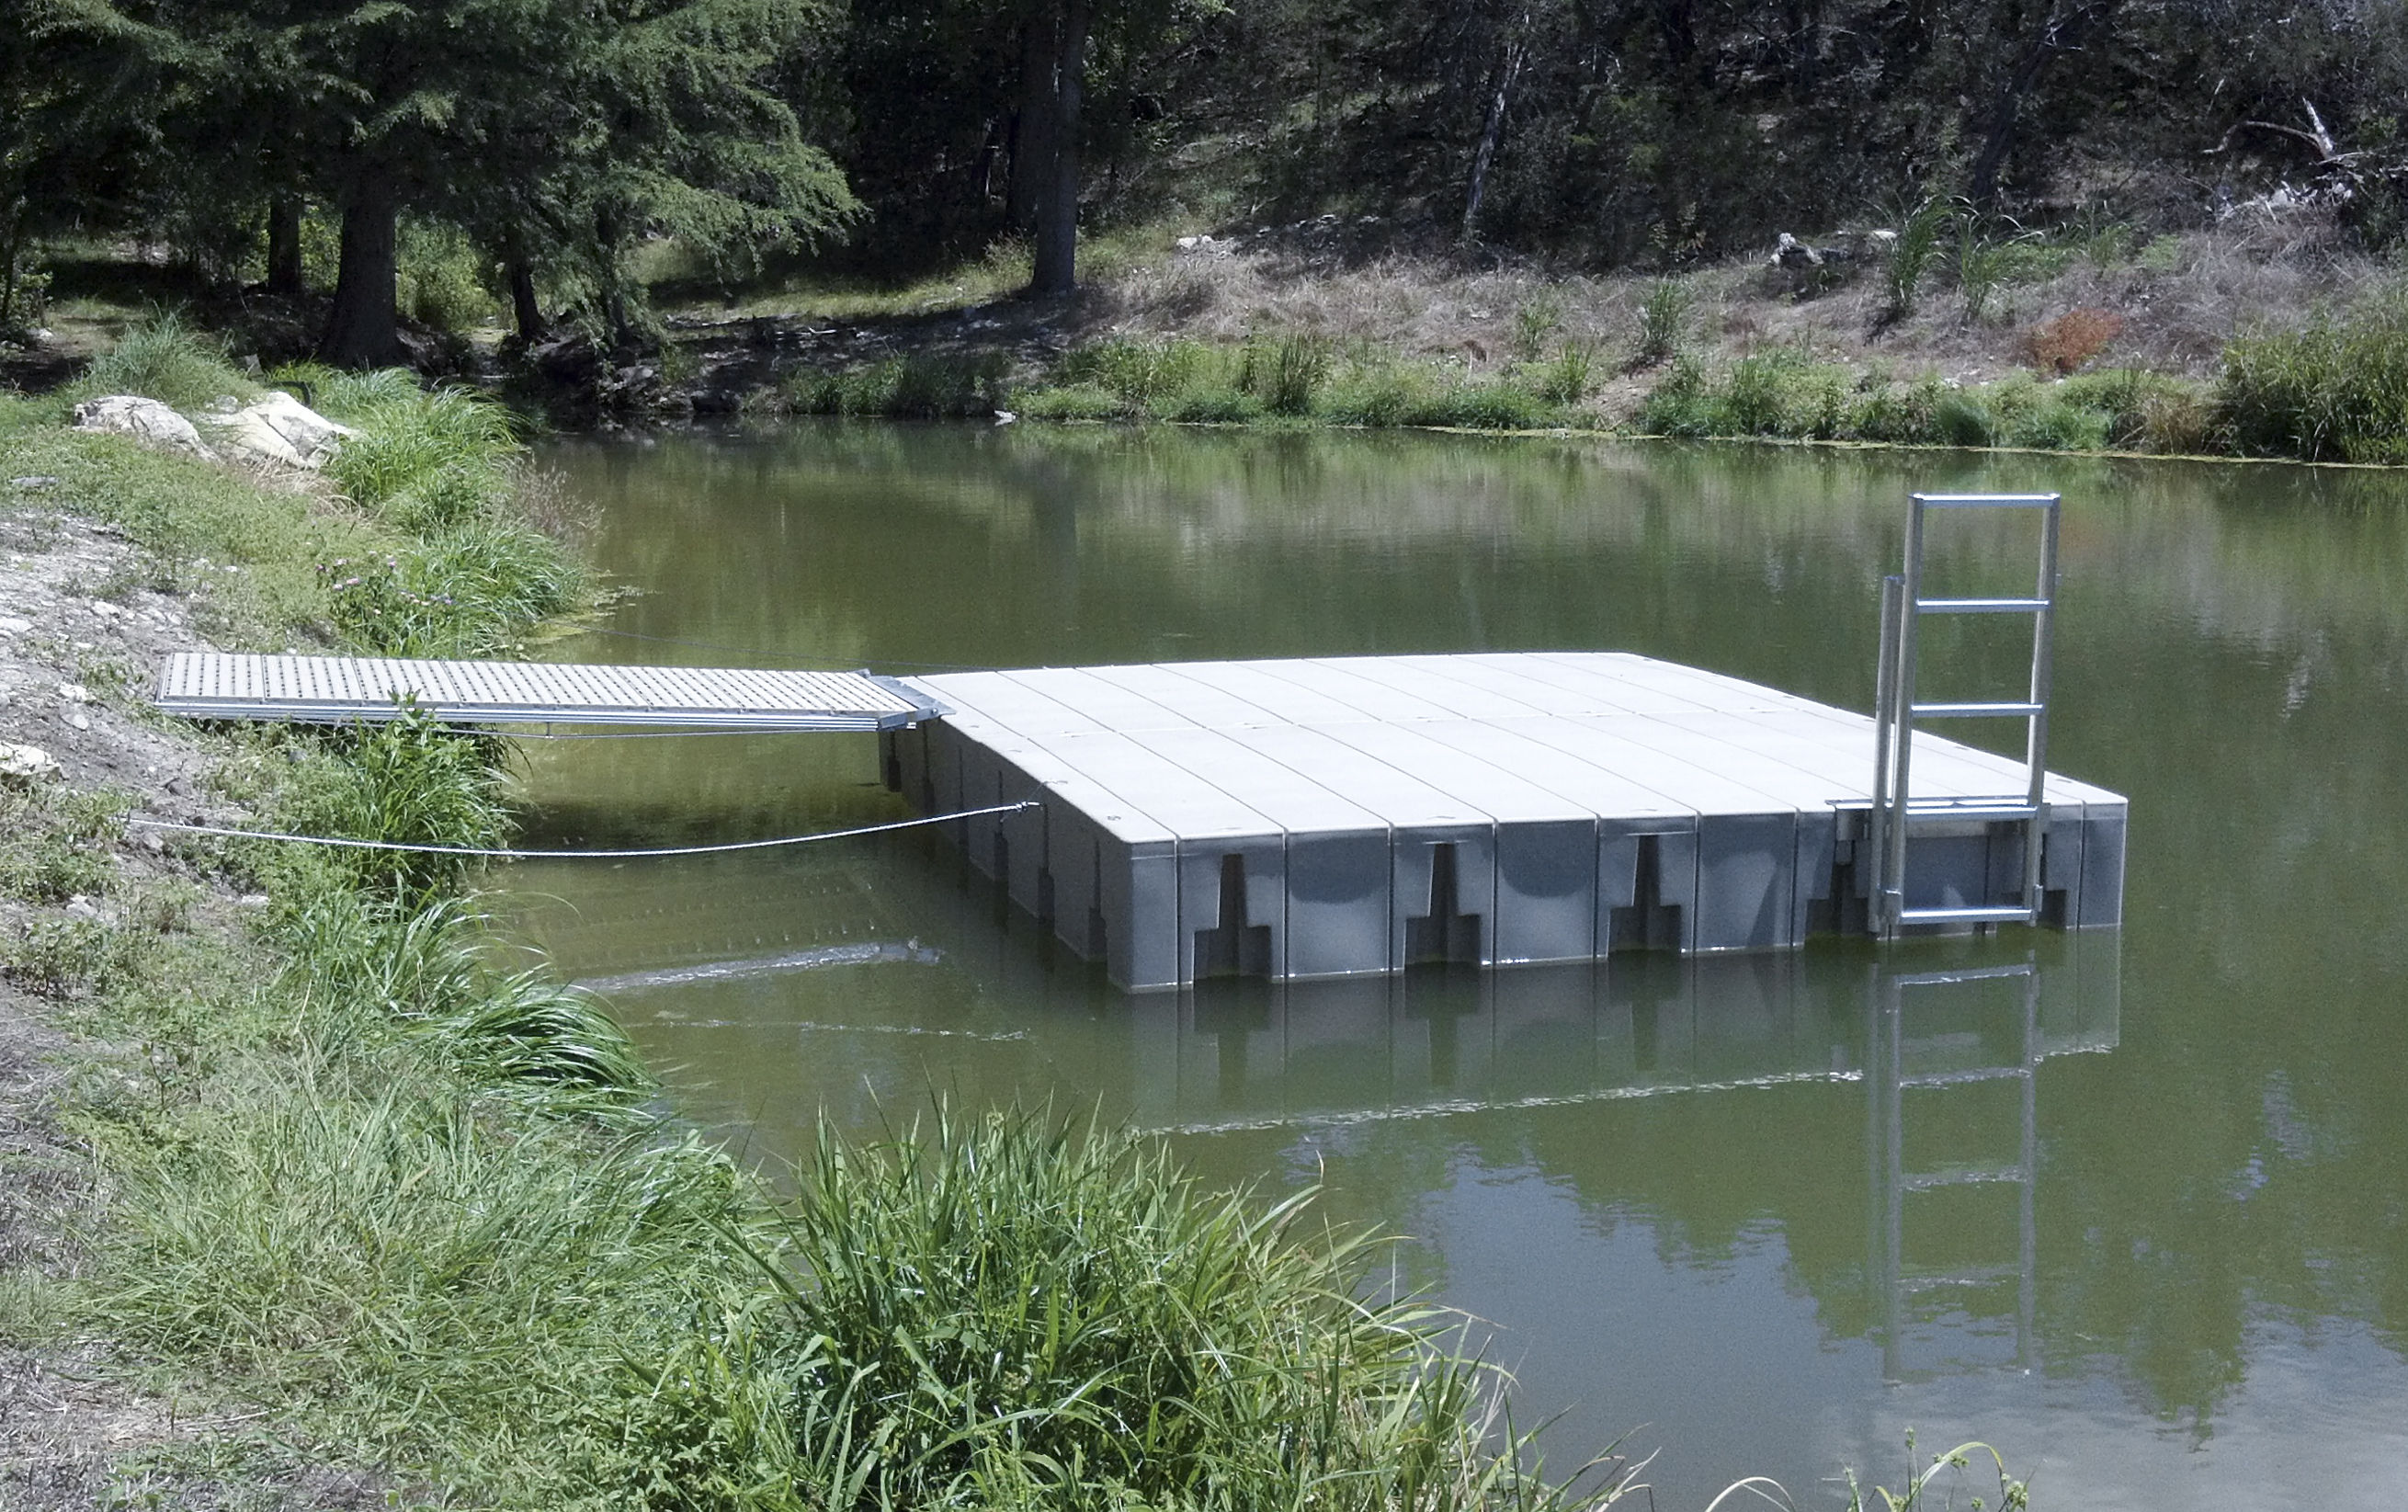 Covered boat dock designs bing images for Small pond dock plans